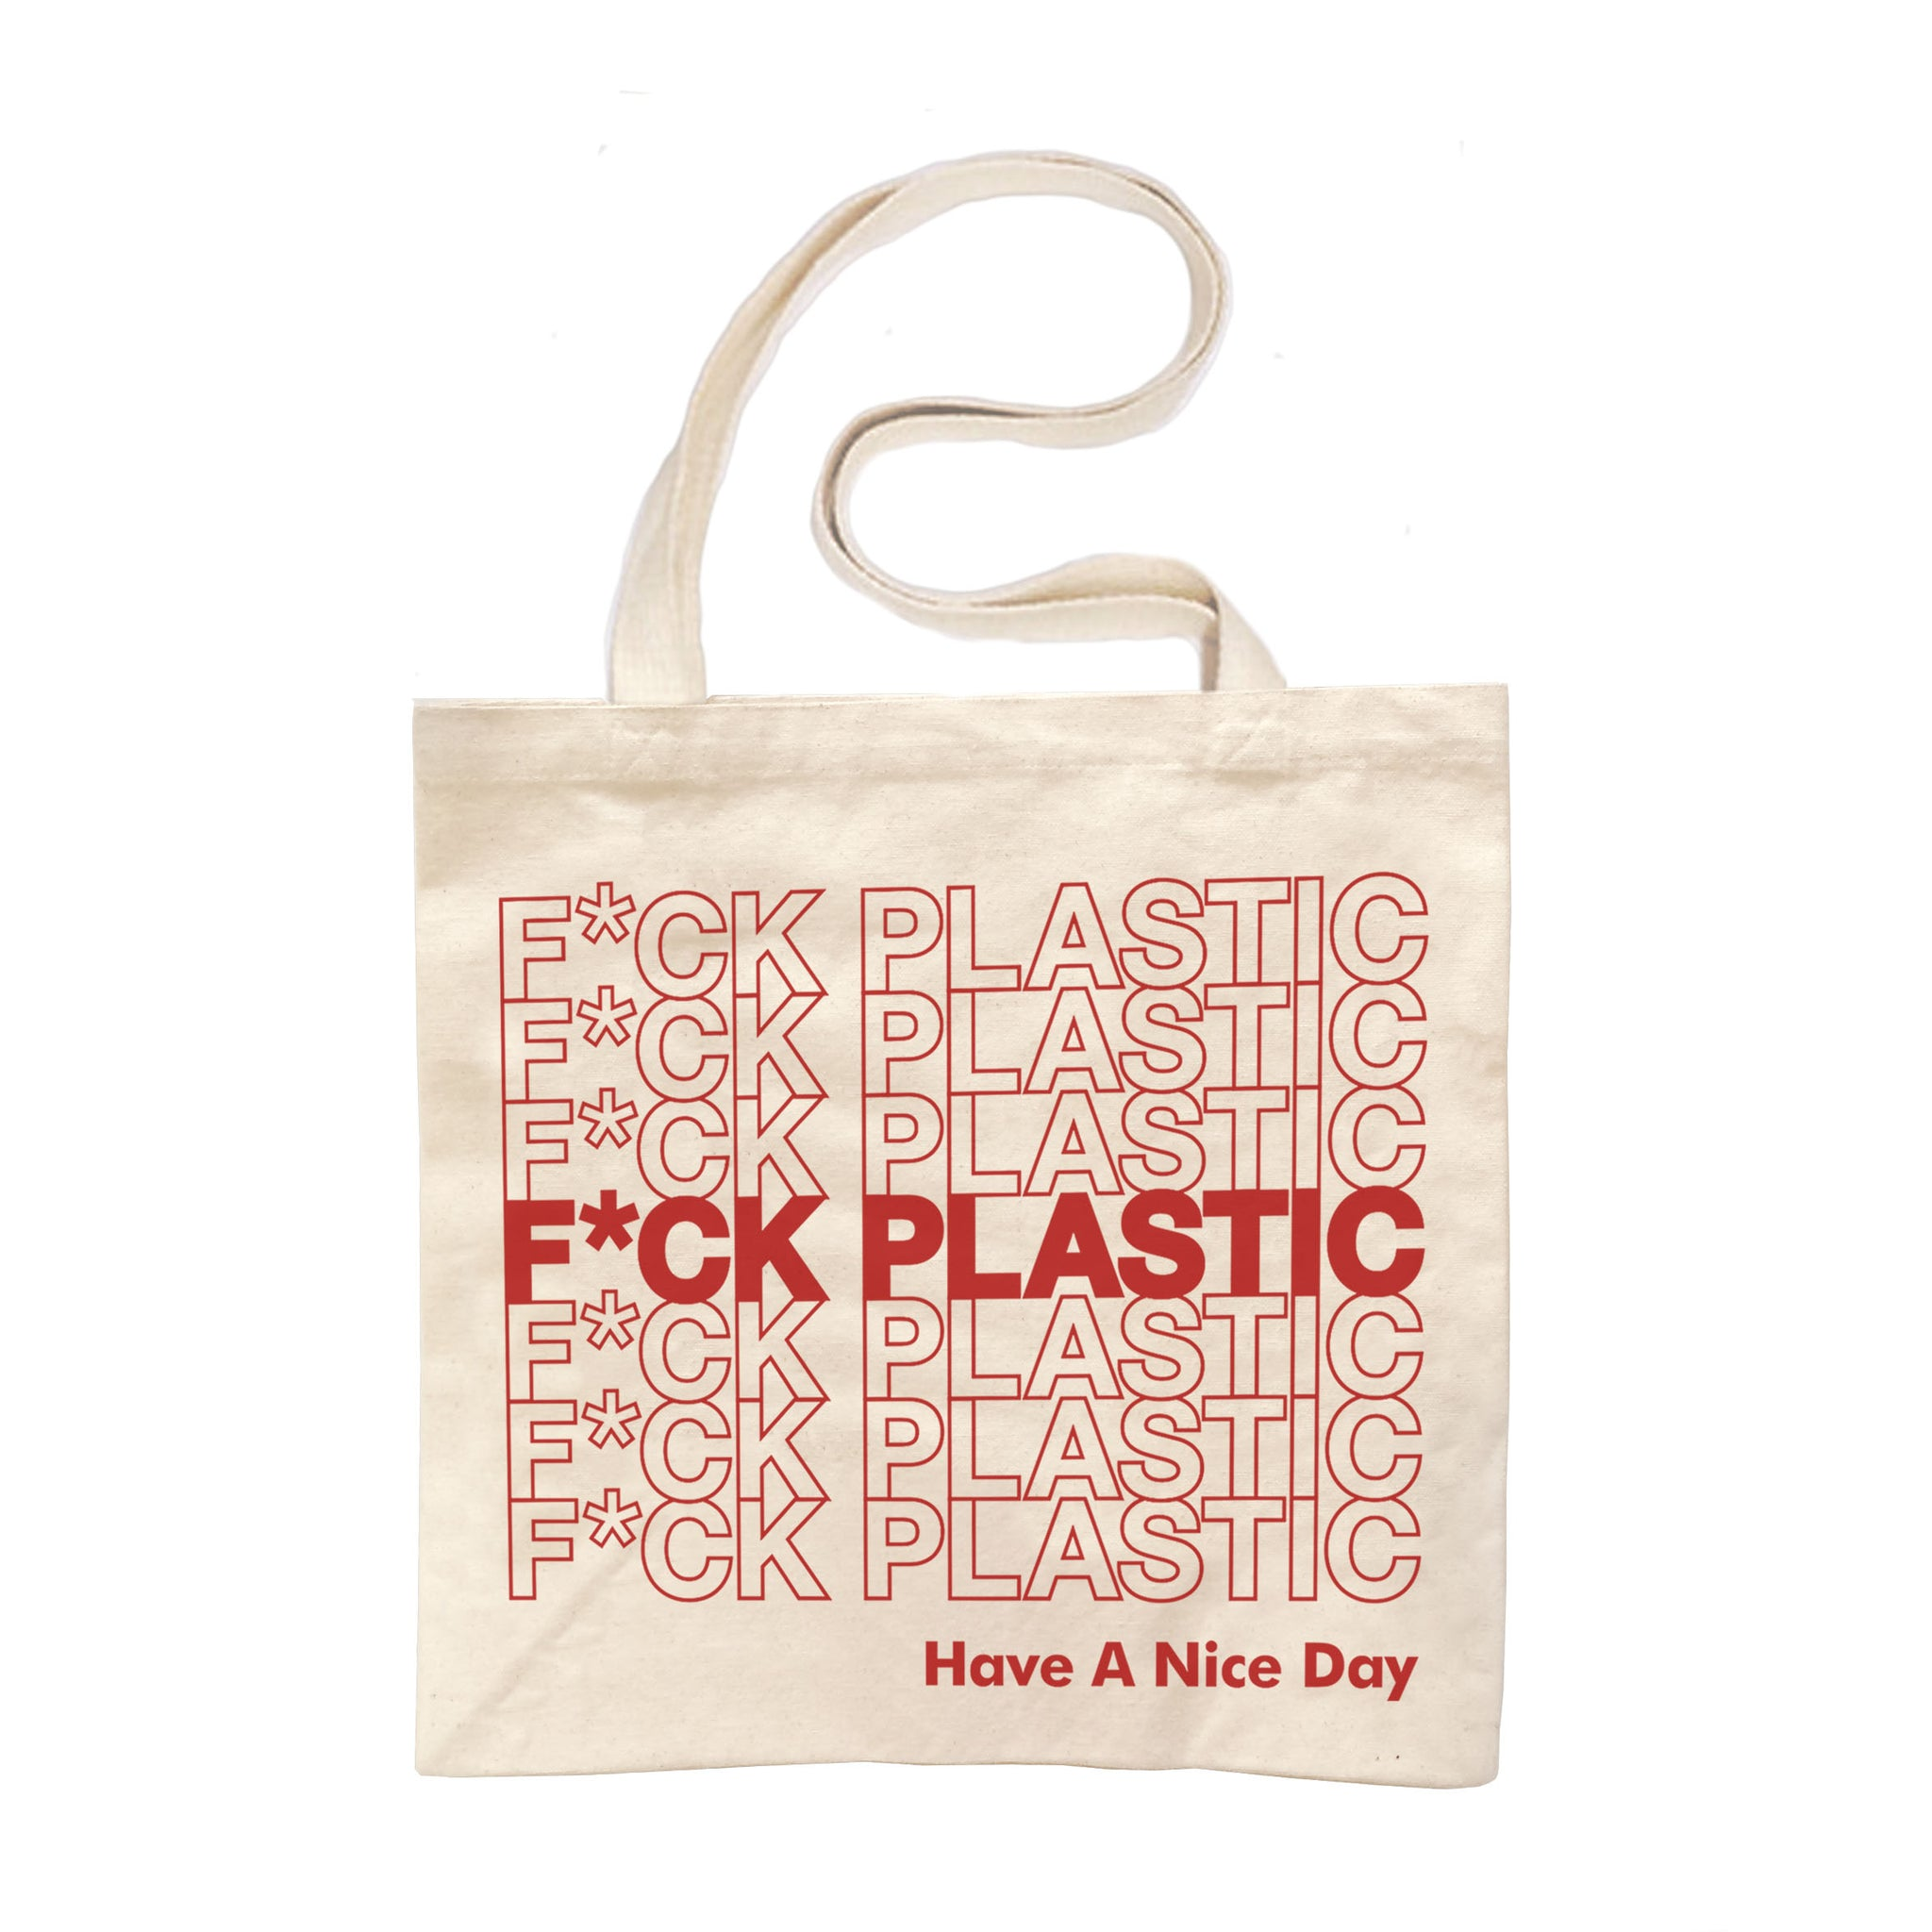 Fuck Plastic. The Large Tote